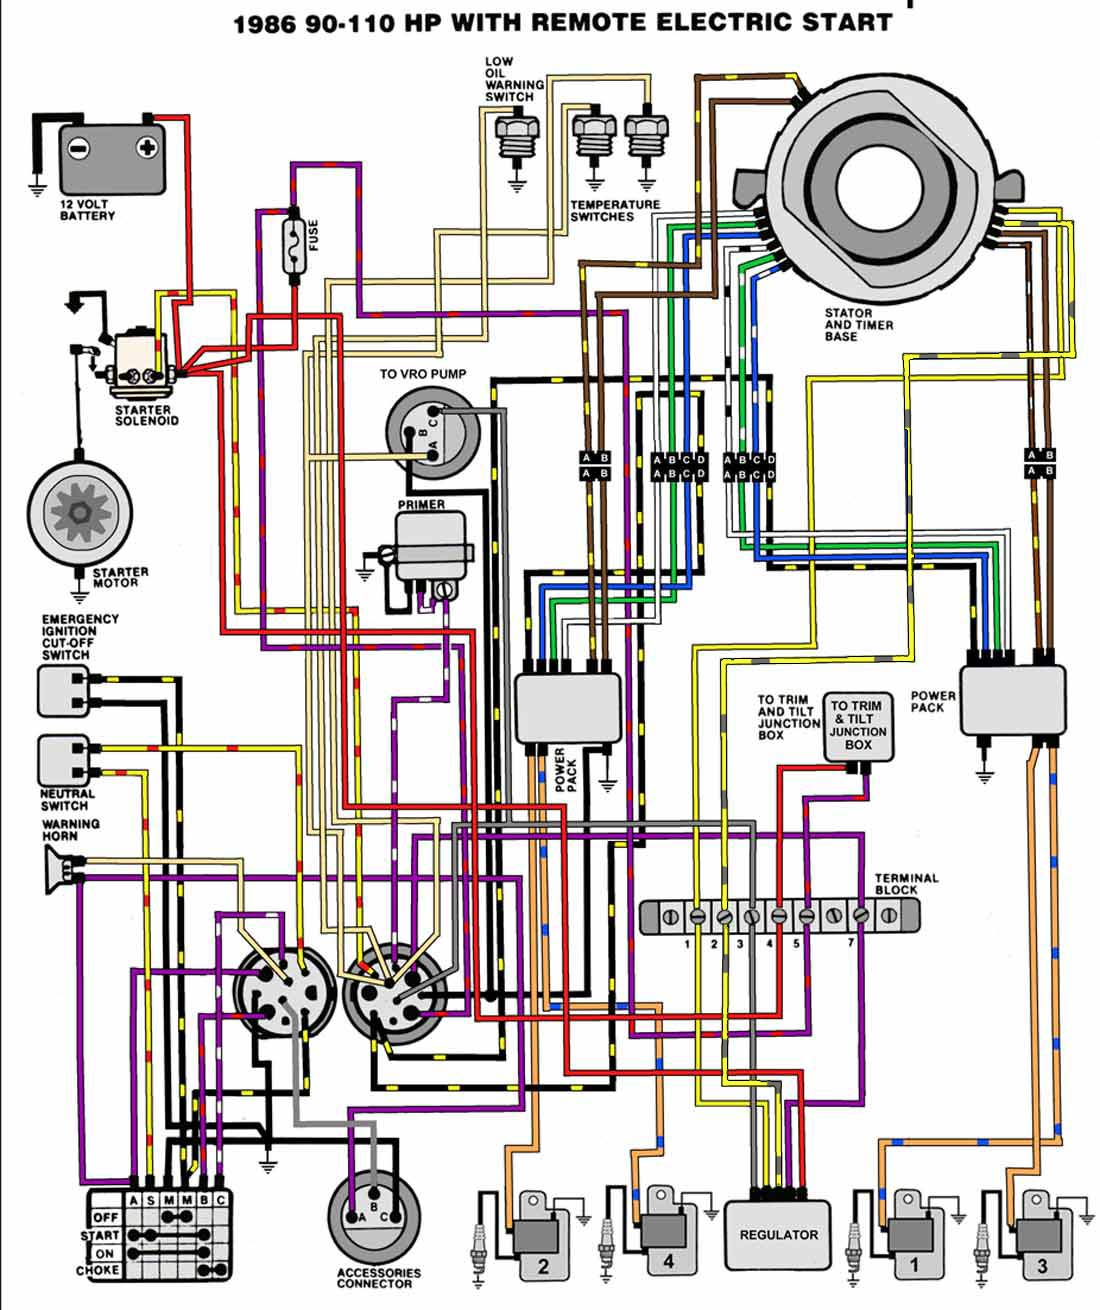 wiring diagram for yamaha outboard motor data wiring diagram Yamaha 250 Outboard Wiring Diagram